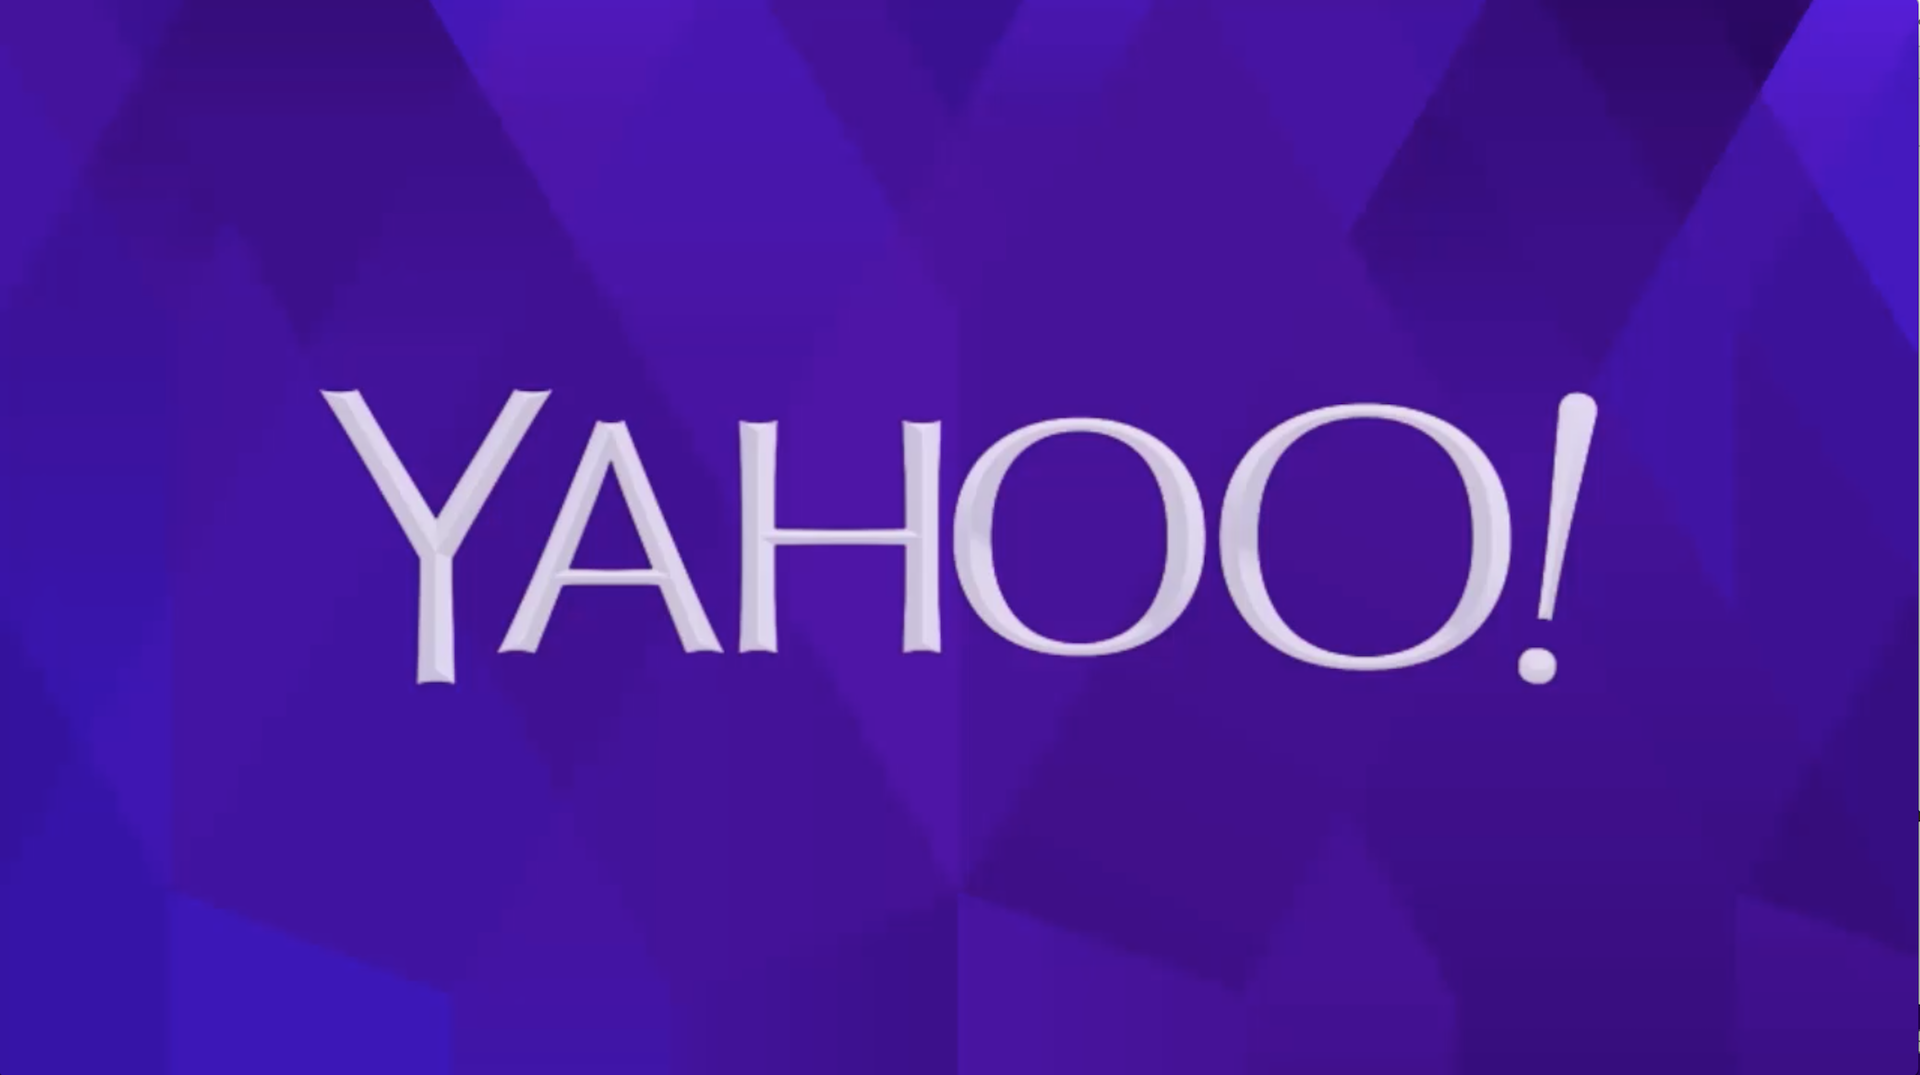 Yahoo Stock Quote Delectable Stocks Pop As Syria Escalation Fears Wane  Syria Inspiration